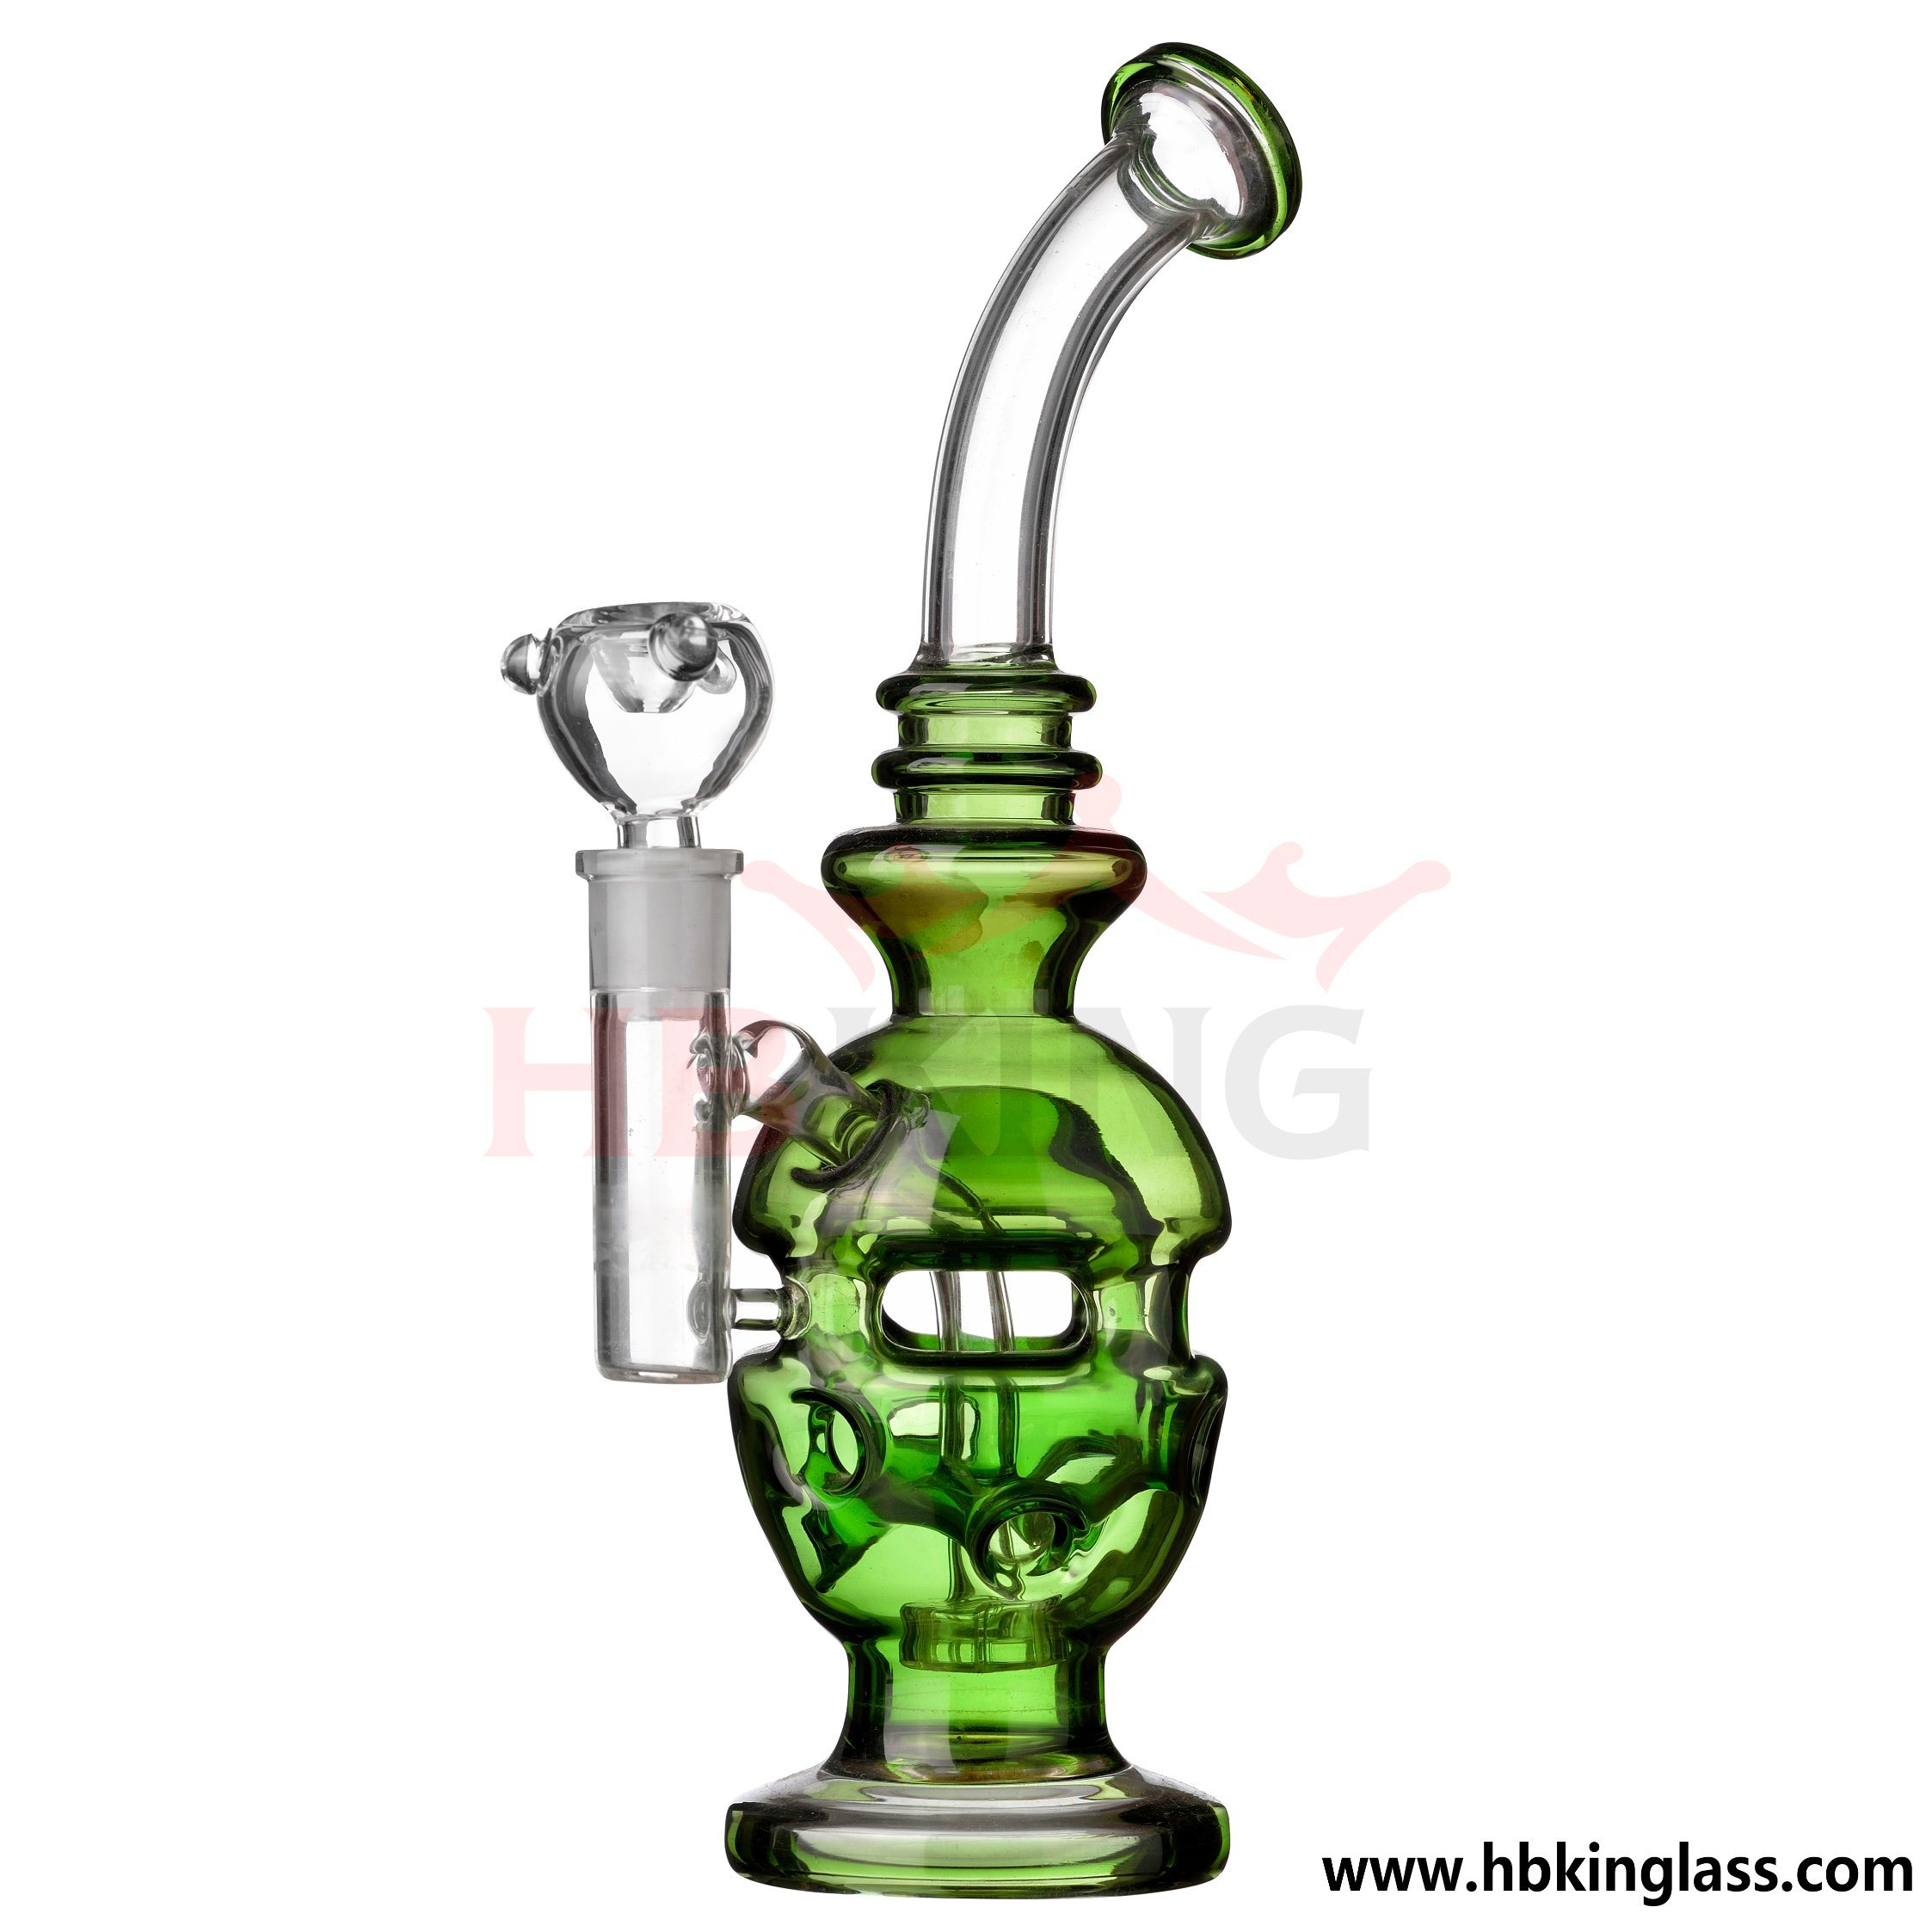 Hbking Chronic Faberge Percolator Glass DAB Oil Rig